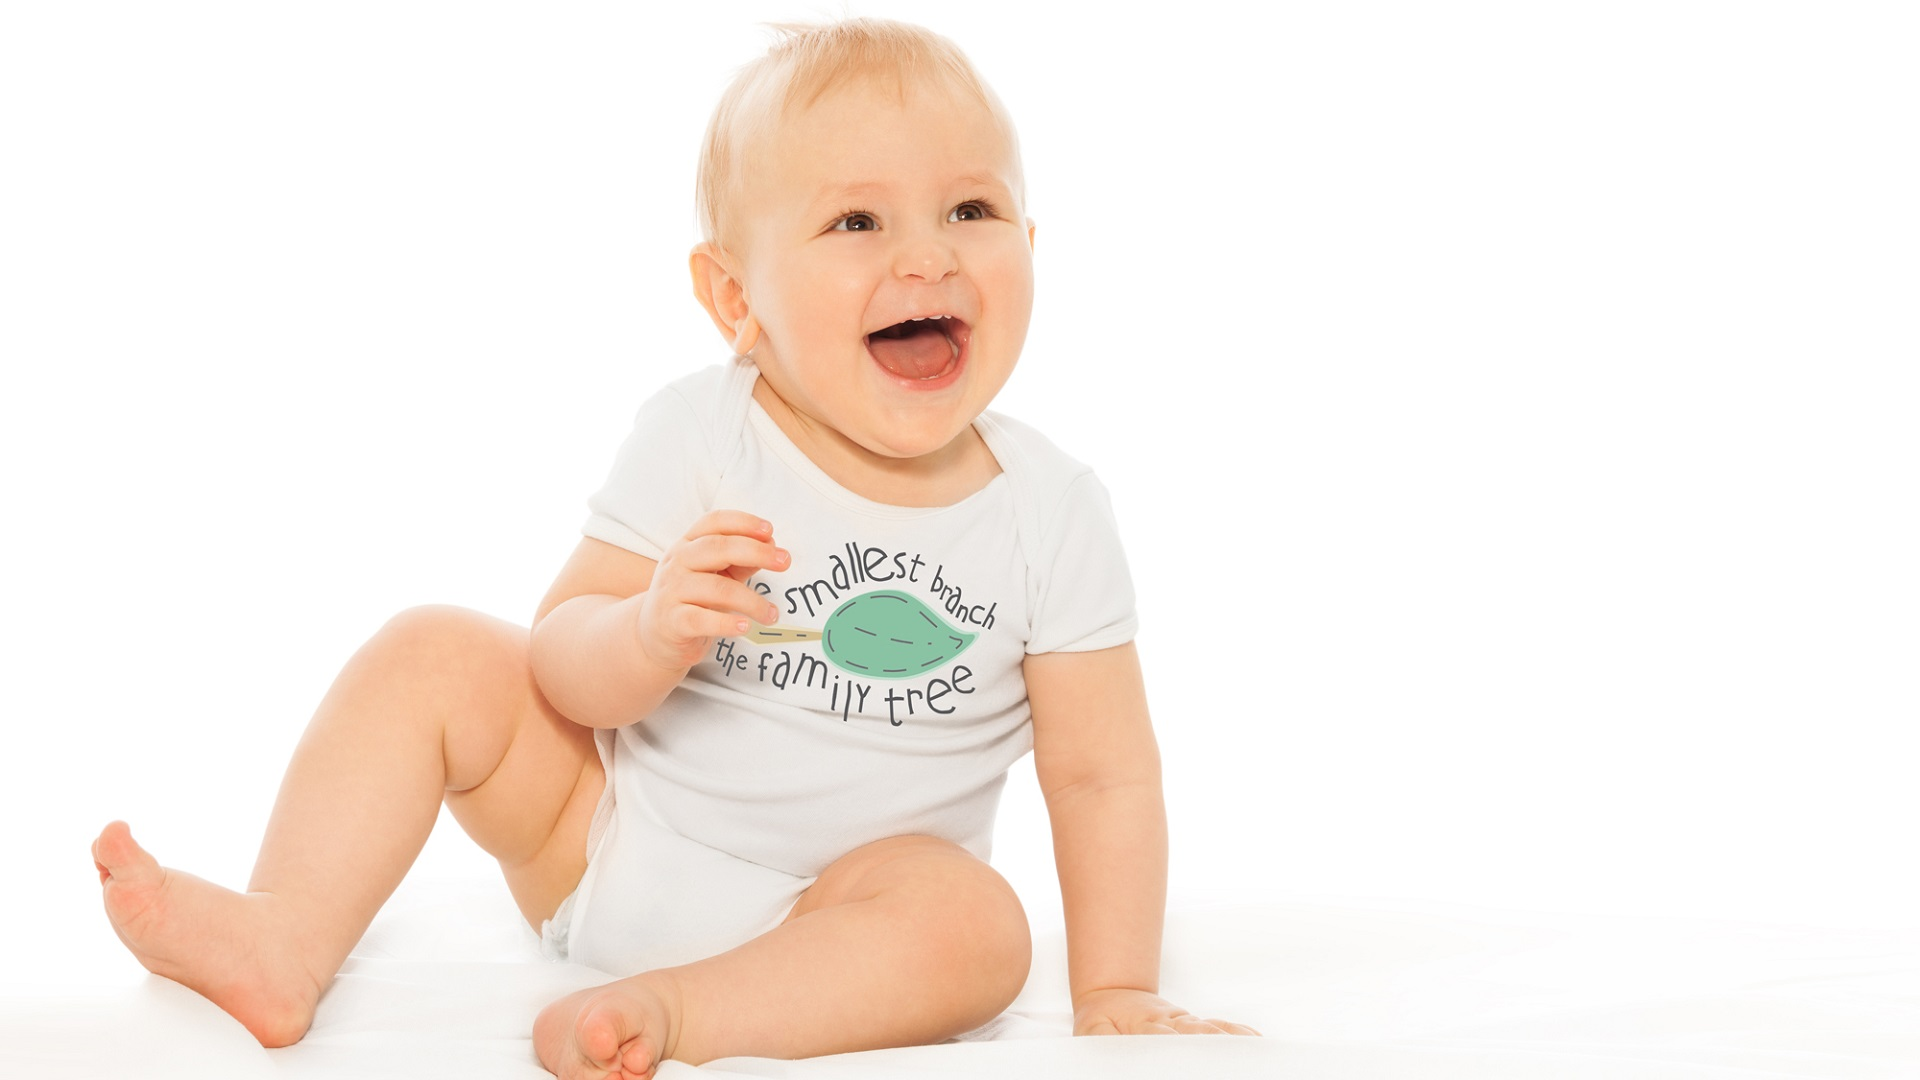 A laughing baby wearing an Itty Bitty Branch onesie